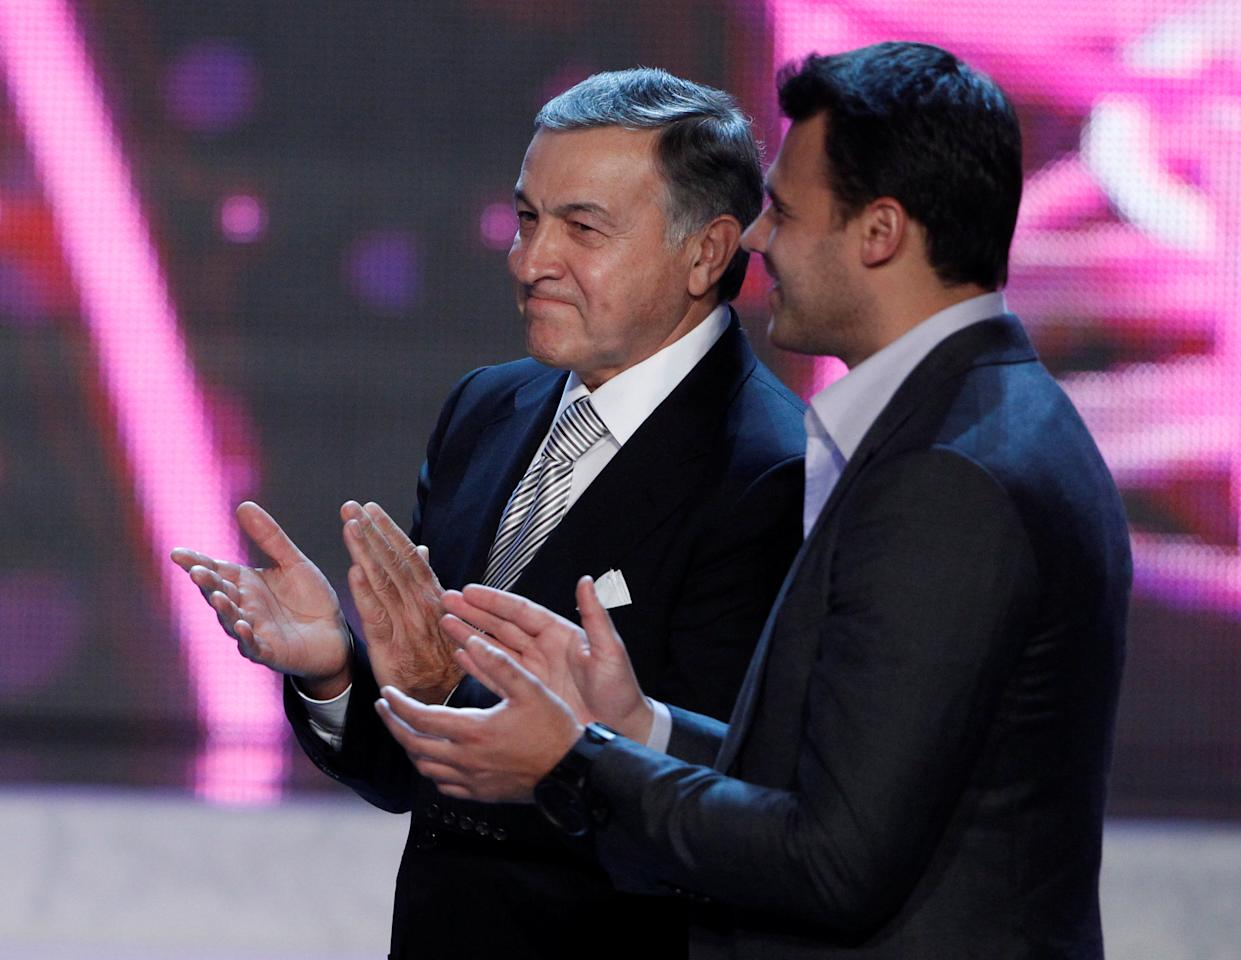 FILE PHOTO: Russian real estate developer Aras Agalarov (L) applauds with his son, singer Emin Agalarov, during a news conference following the 2013 Miss USA pageant at the Planet Hollywood Resort & Casino in Las Vegas, Nevada June 16, 2013. Picture taken June 16, 2013.   REUTERS/Steve Marcus/File Photo